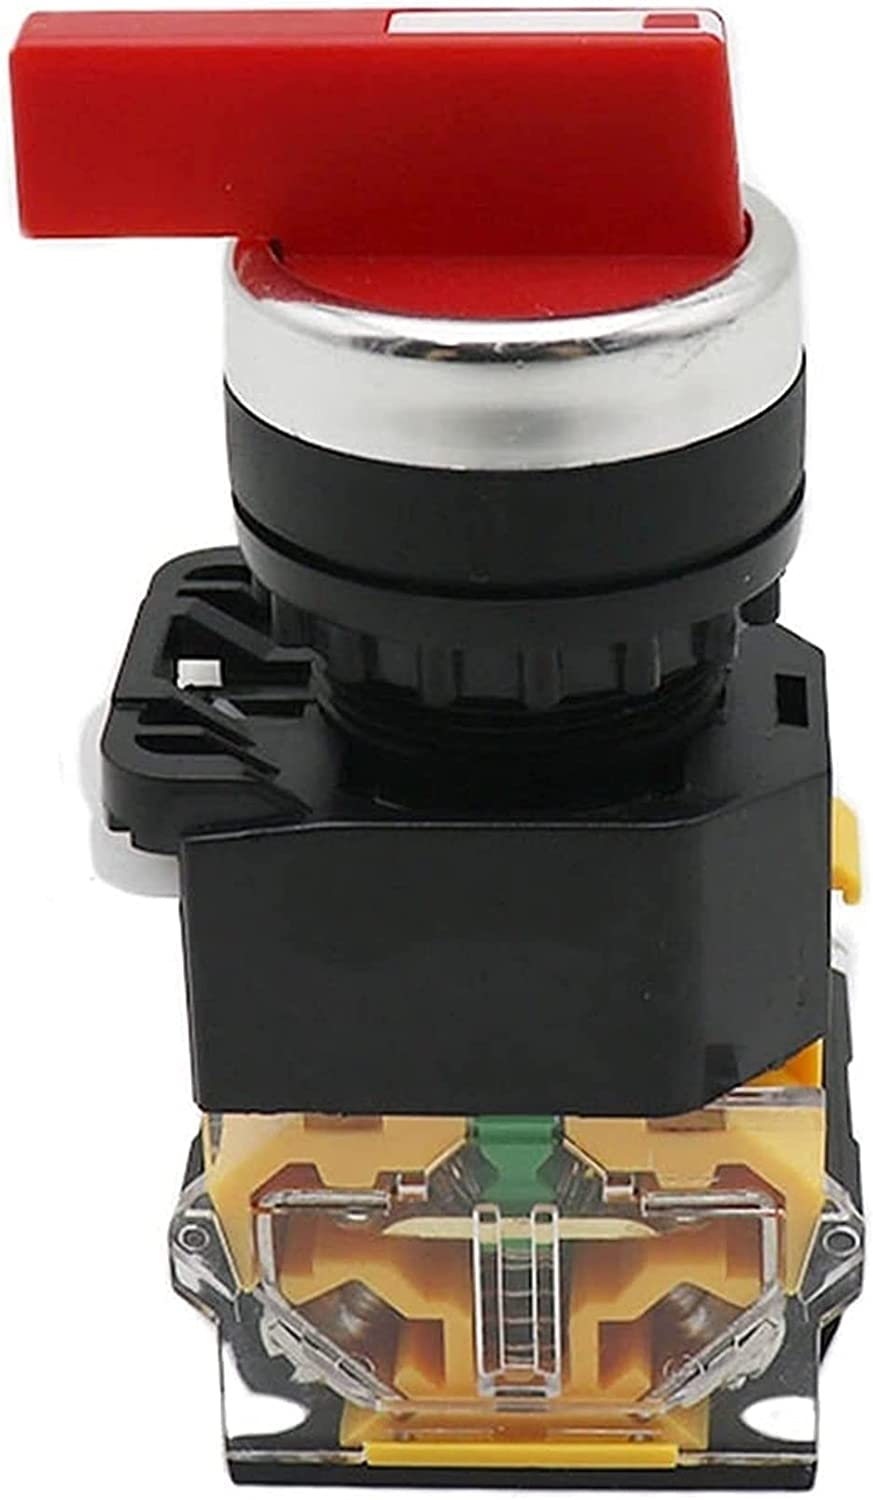 BJJXTD 22mm Dallas Mall Selector Knob Rotary 1 Momentary Switch Latching Max 59% OFF 2NO